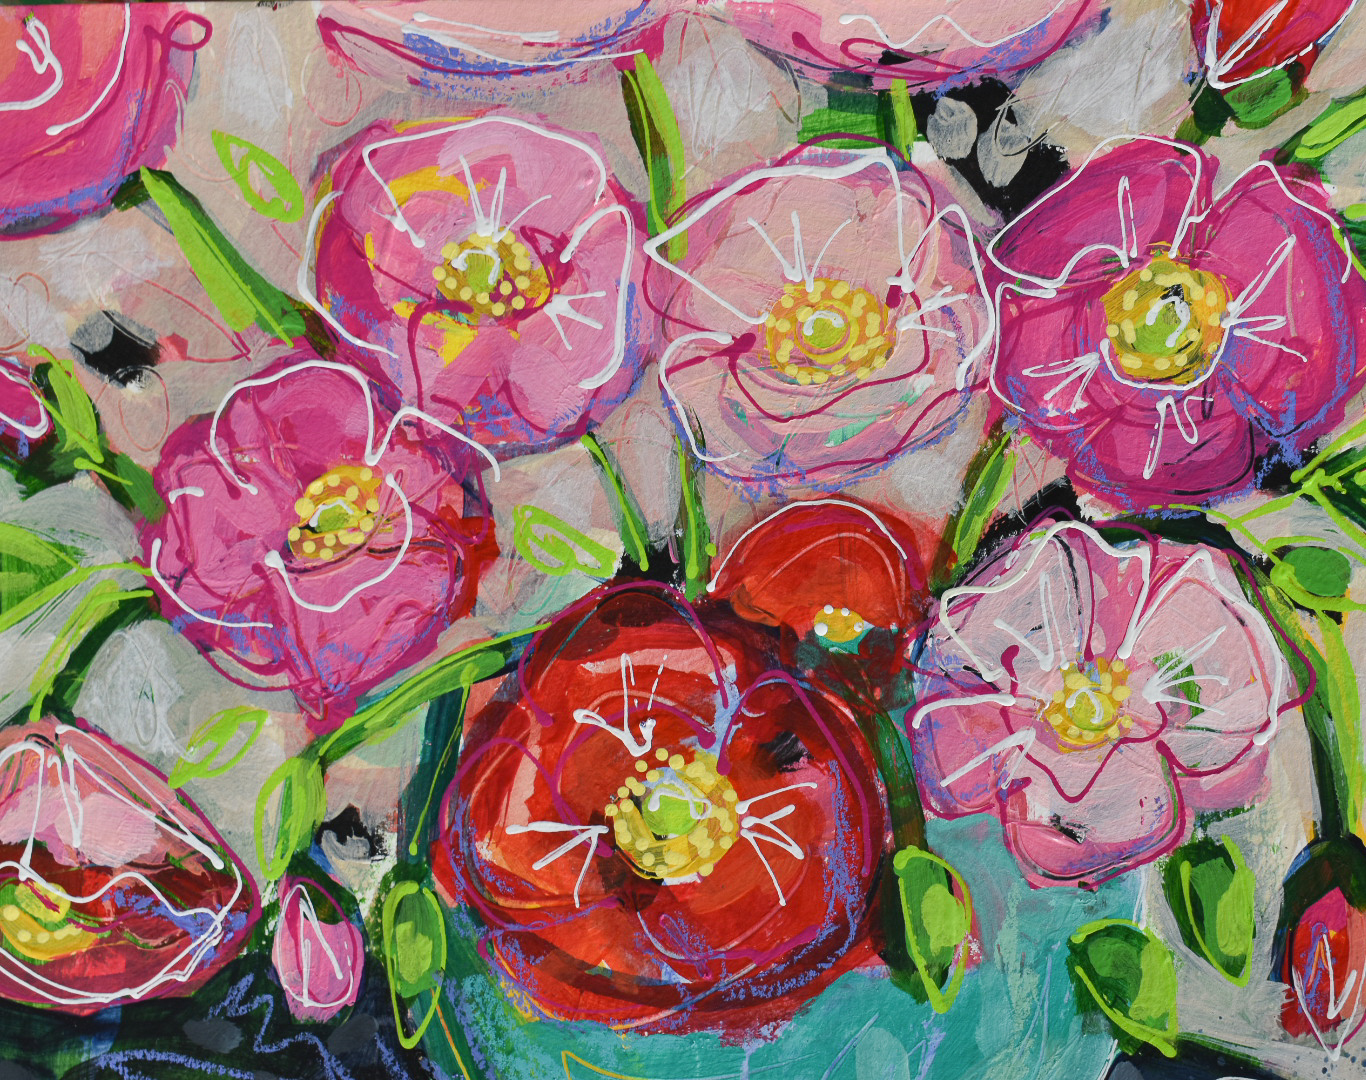 boho_poppies_painting_flowers_daisyfaithart_6.jpg